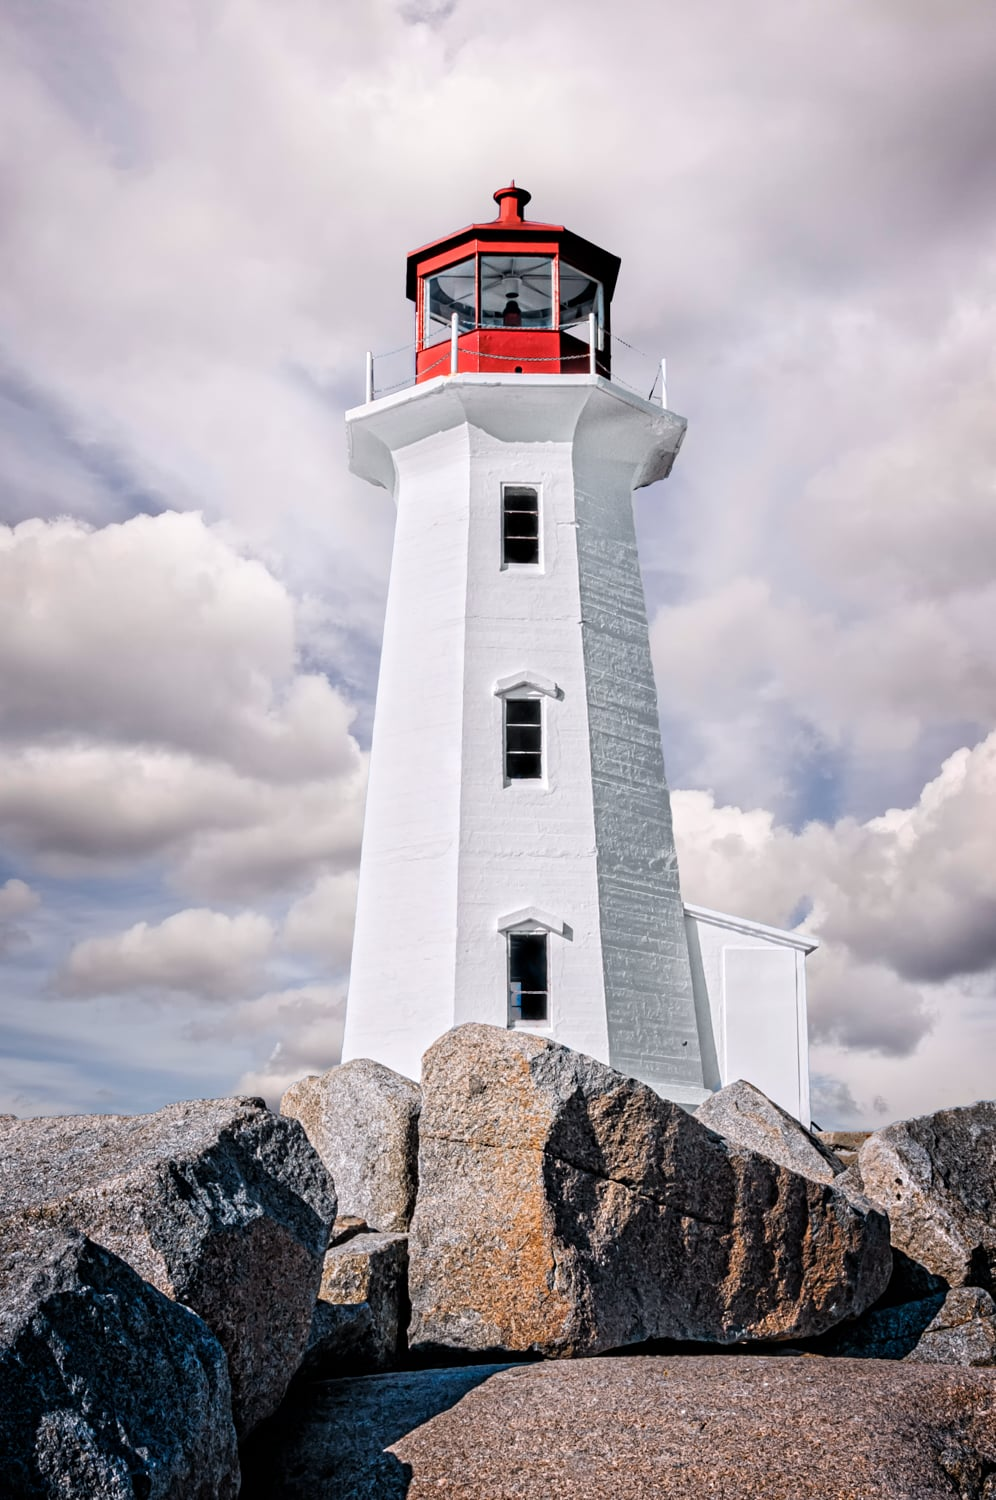 Peggy's Cove lighthouse on the rocks in Nova Scotia.